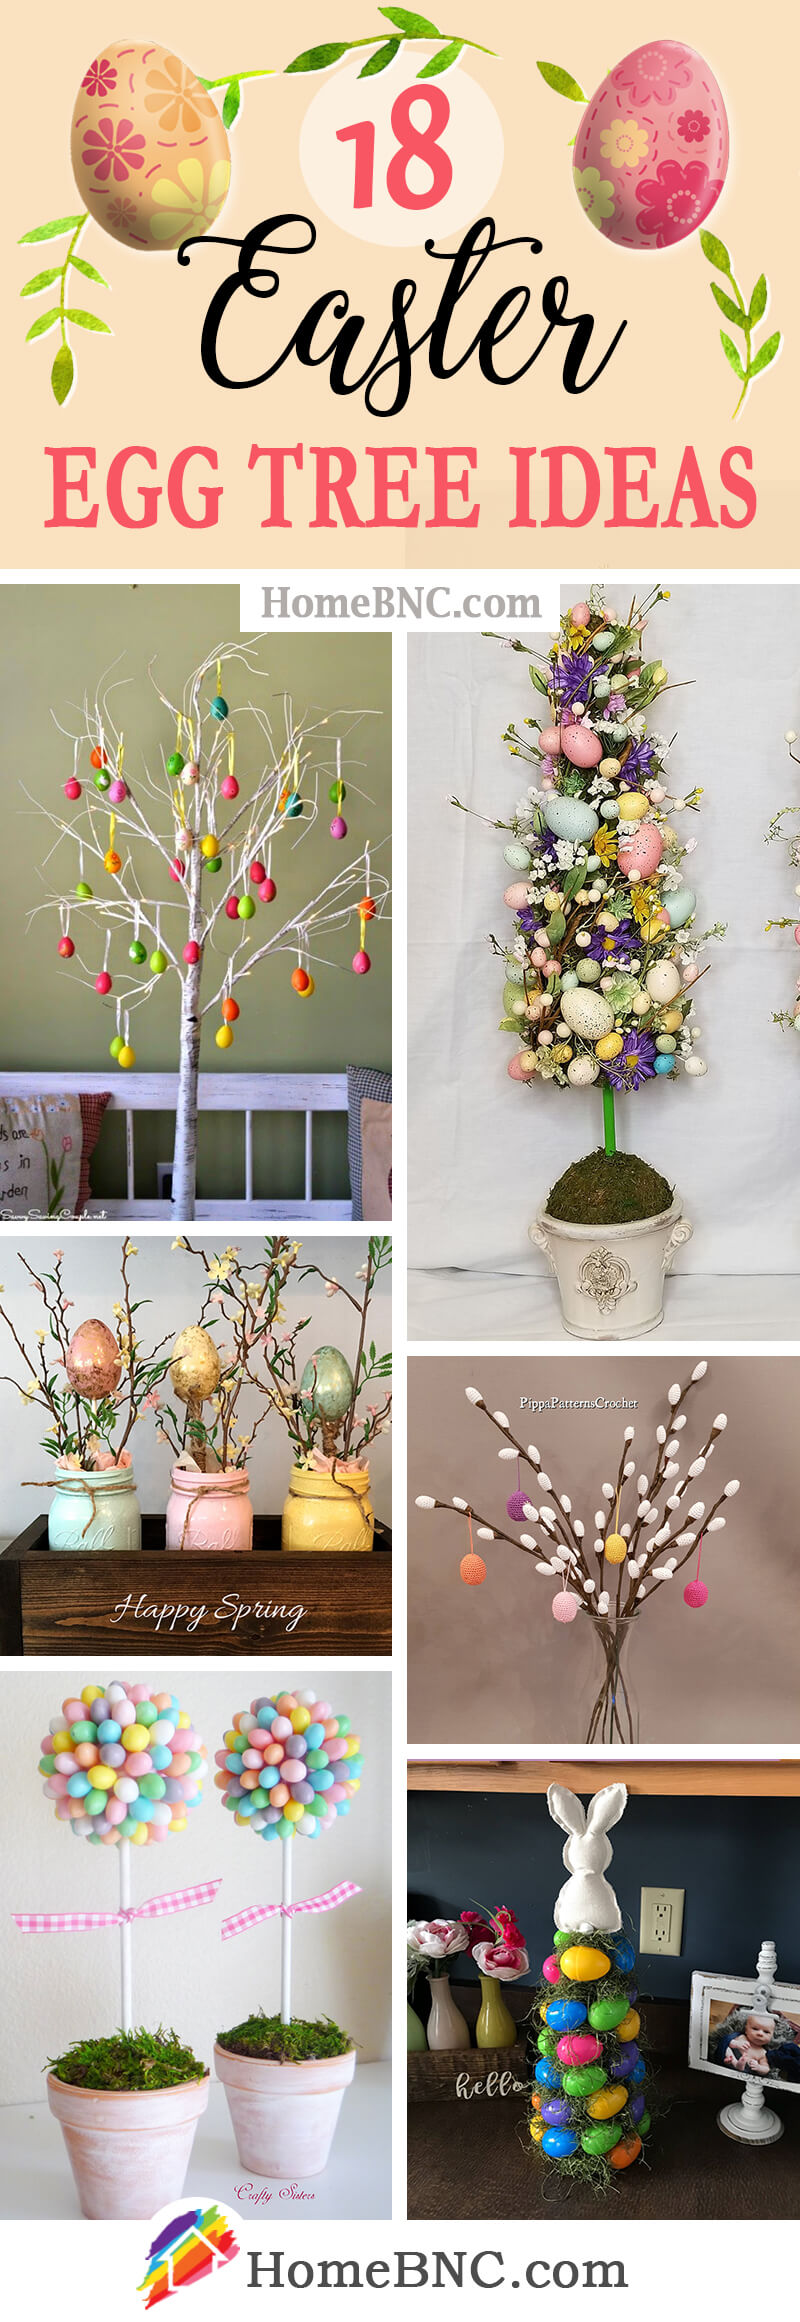 Easter Egg Tree Ideas